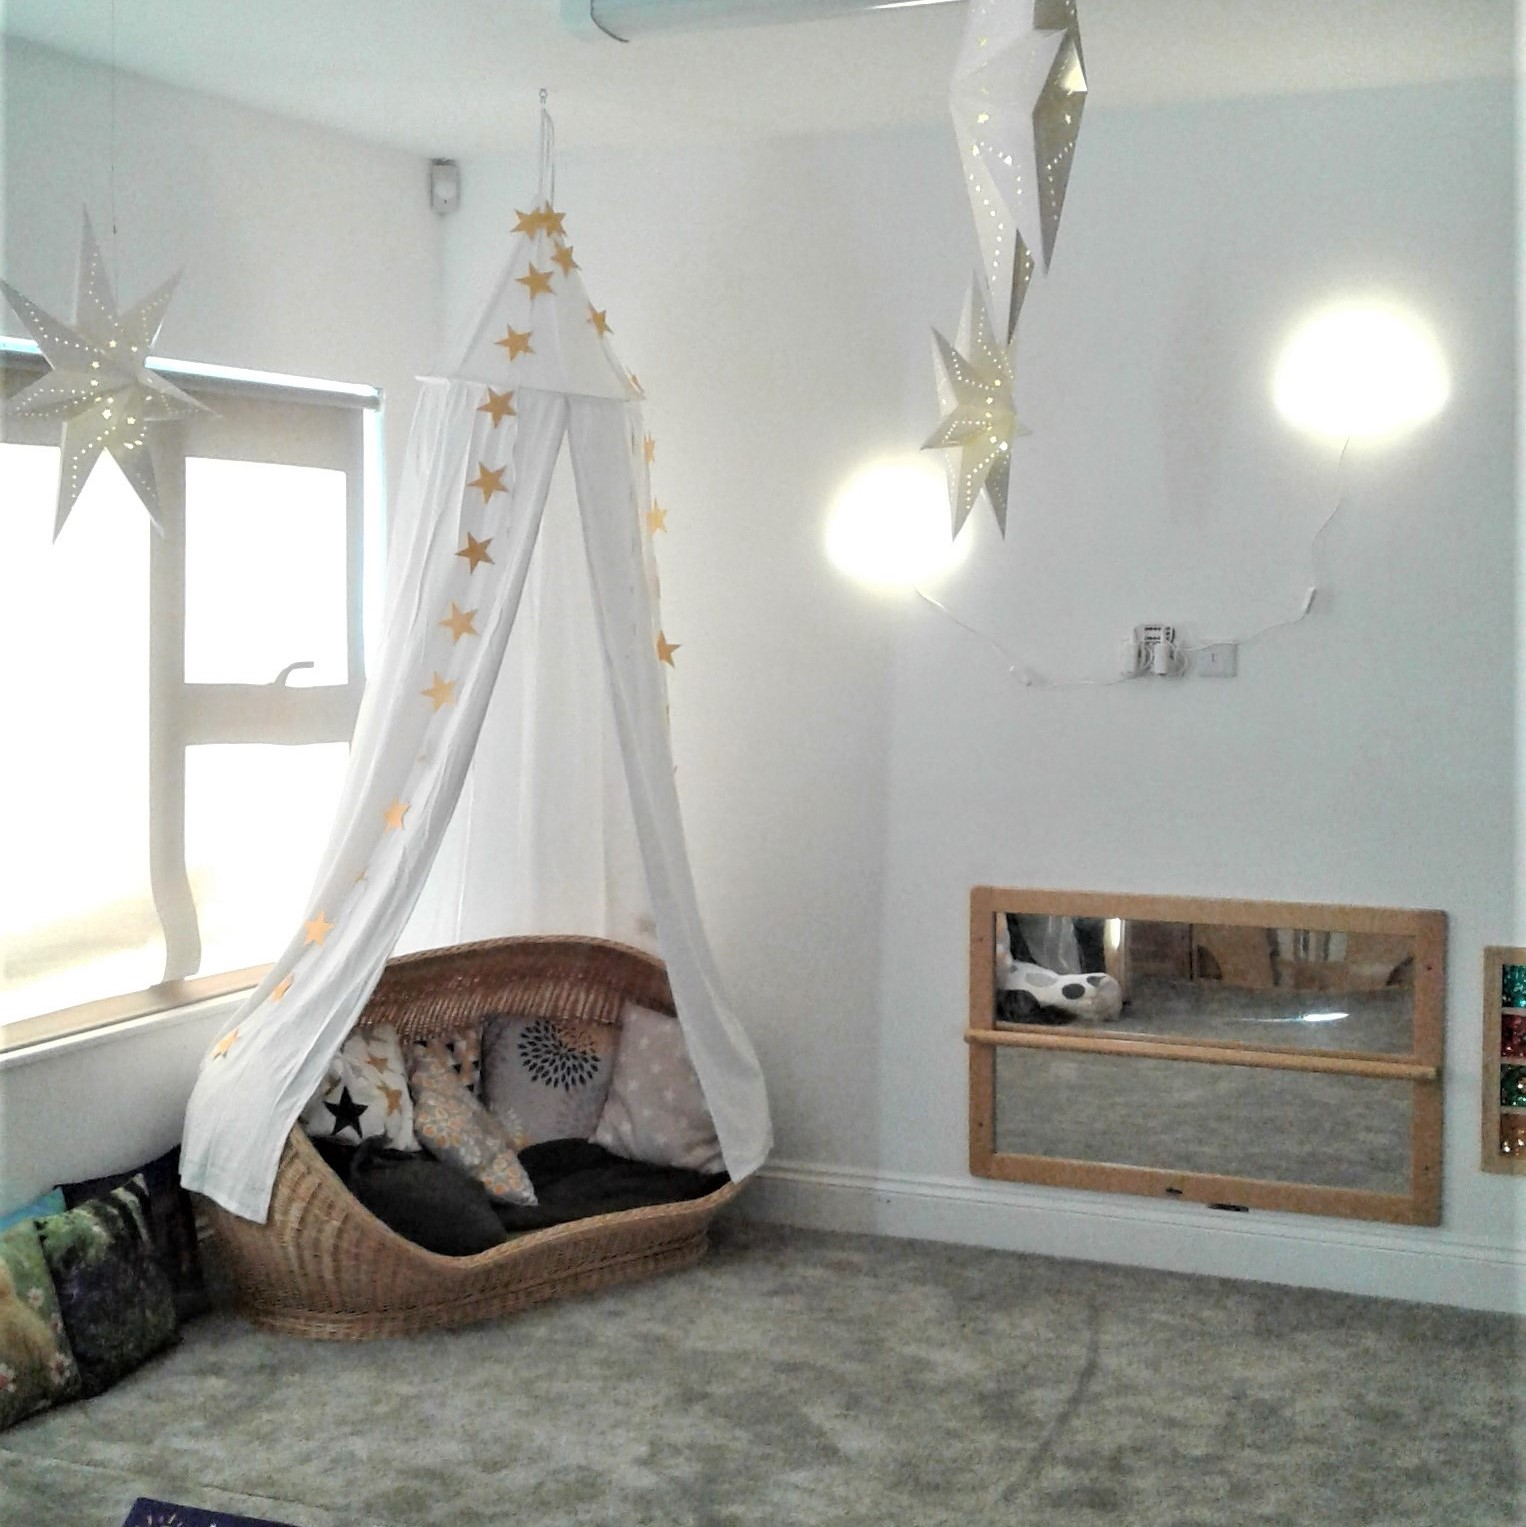 We have rearranged the toddler room to extend the cosy area